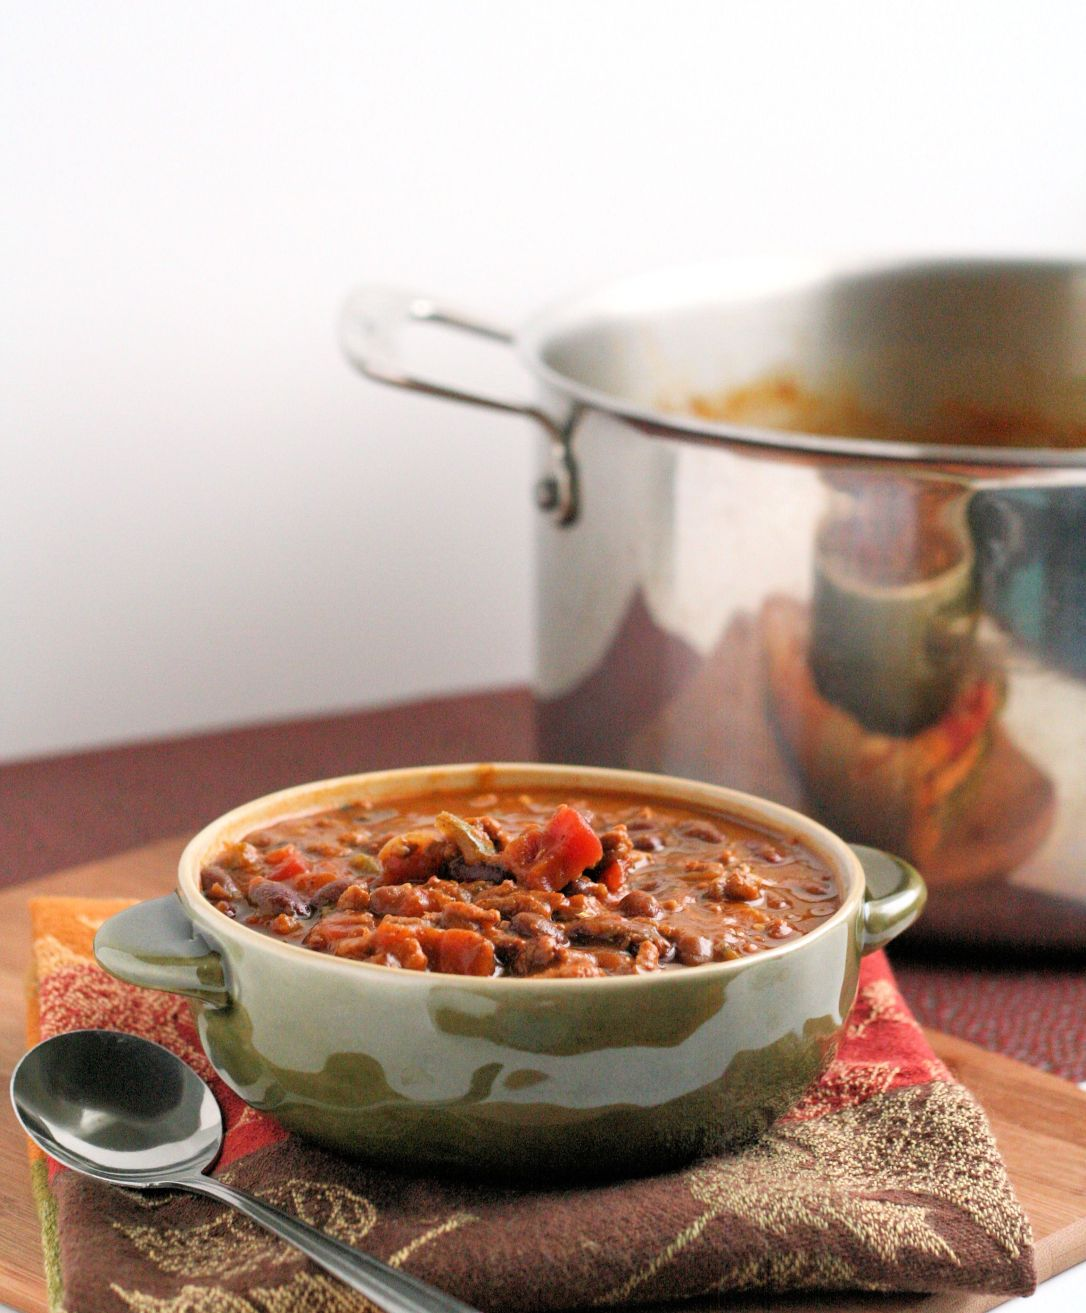 Pumpkin and Black Bean Chili 2